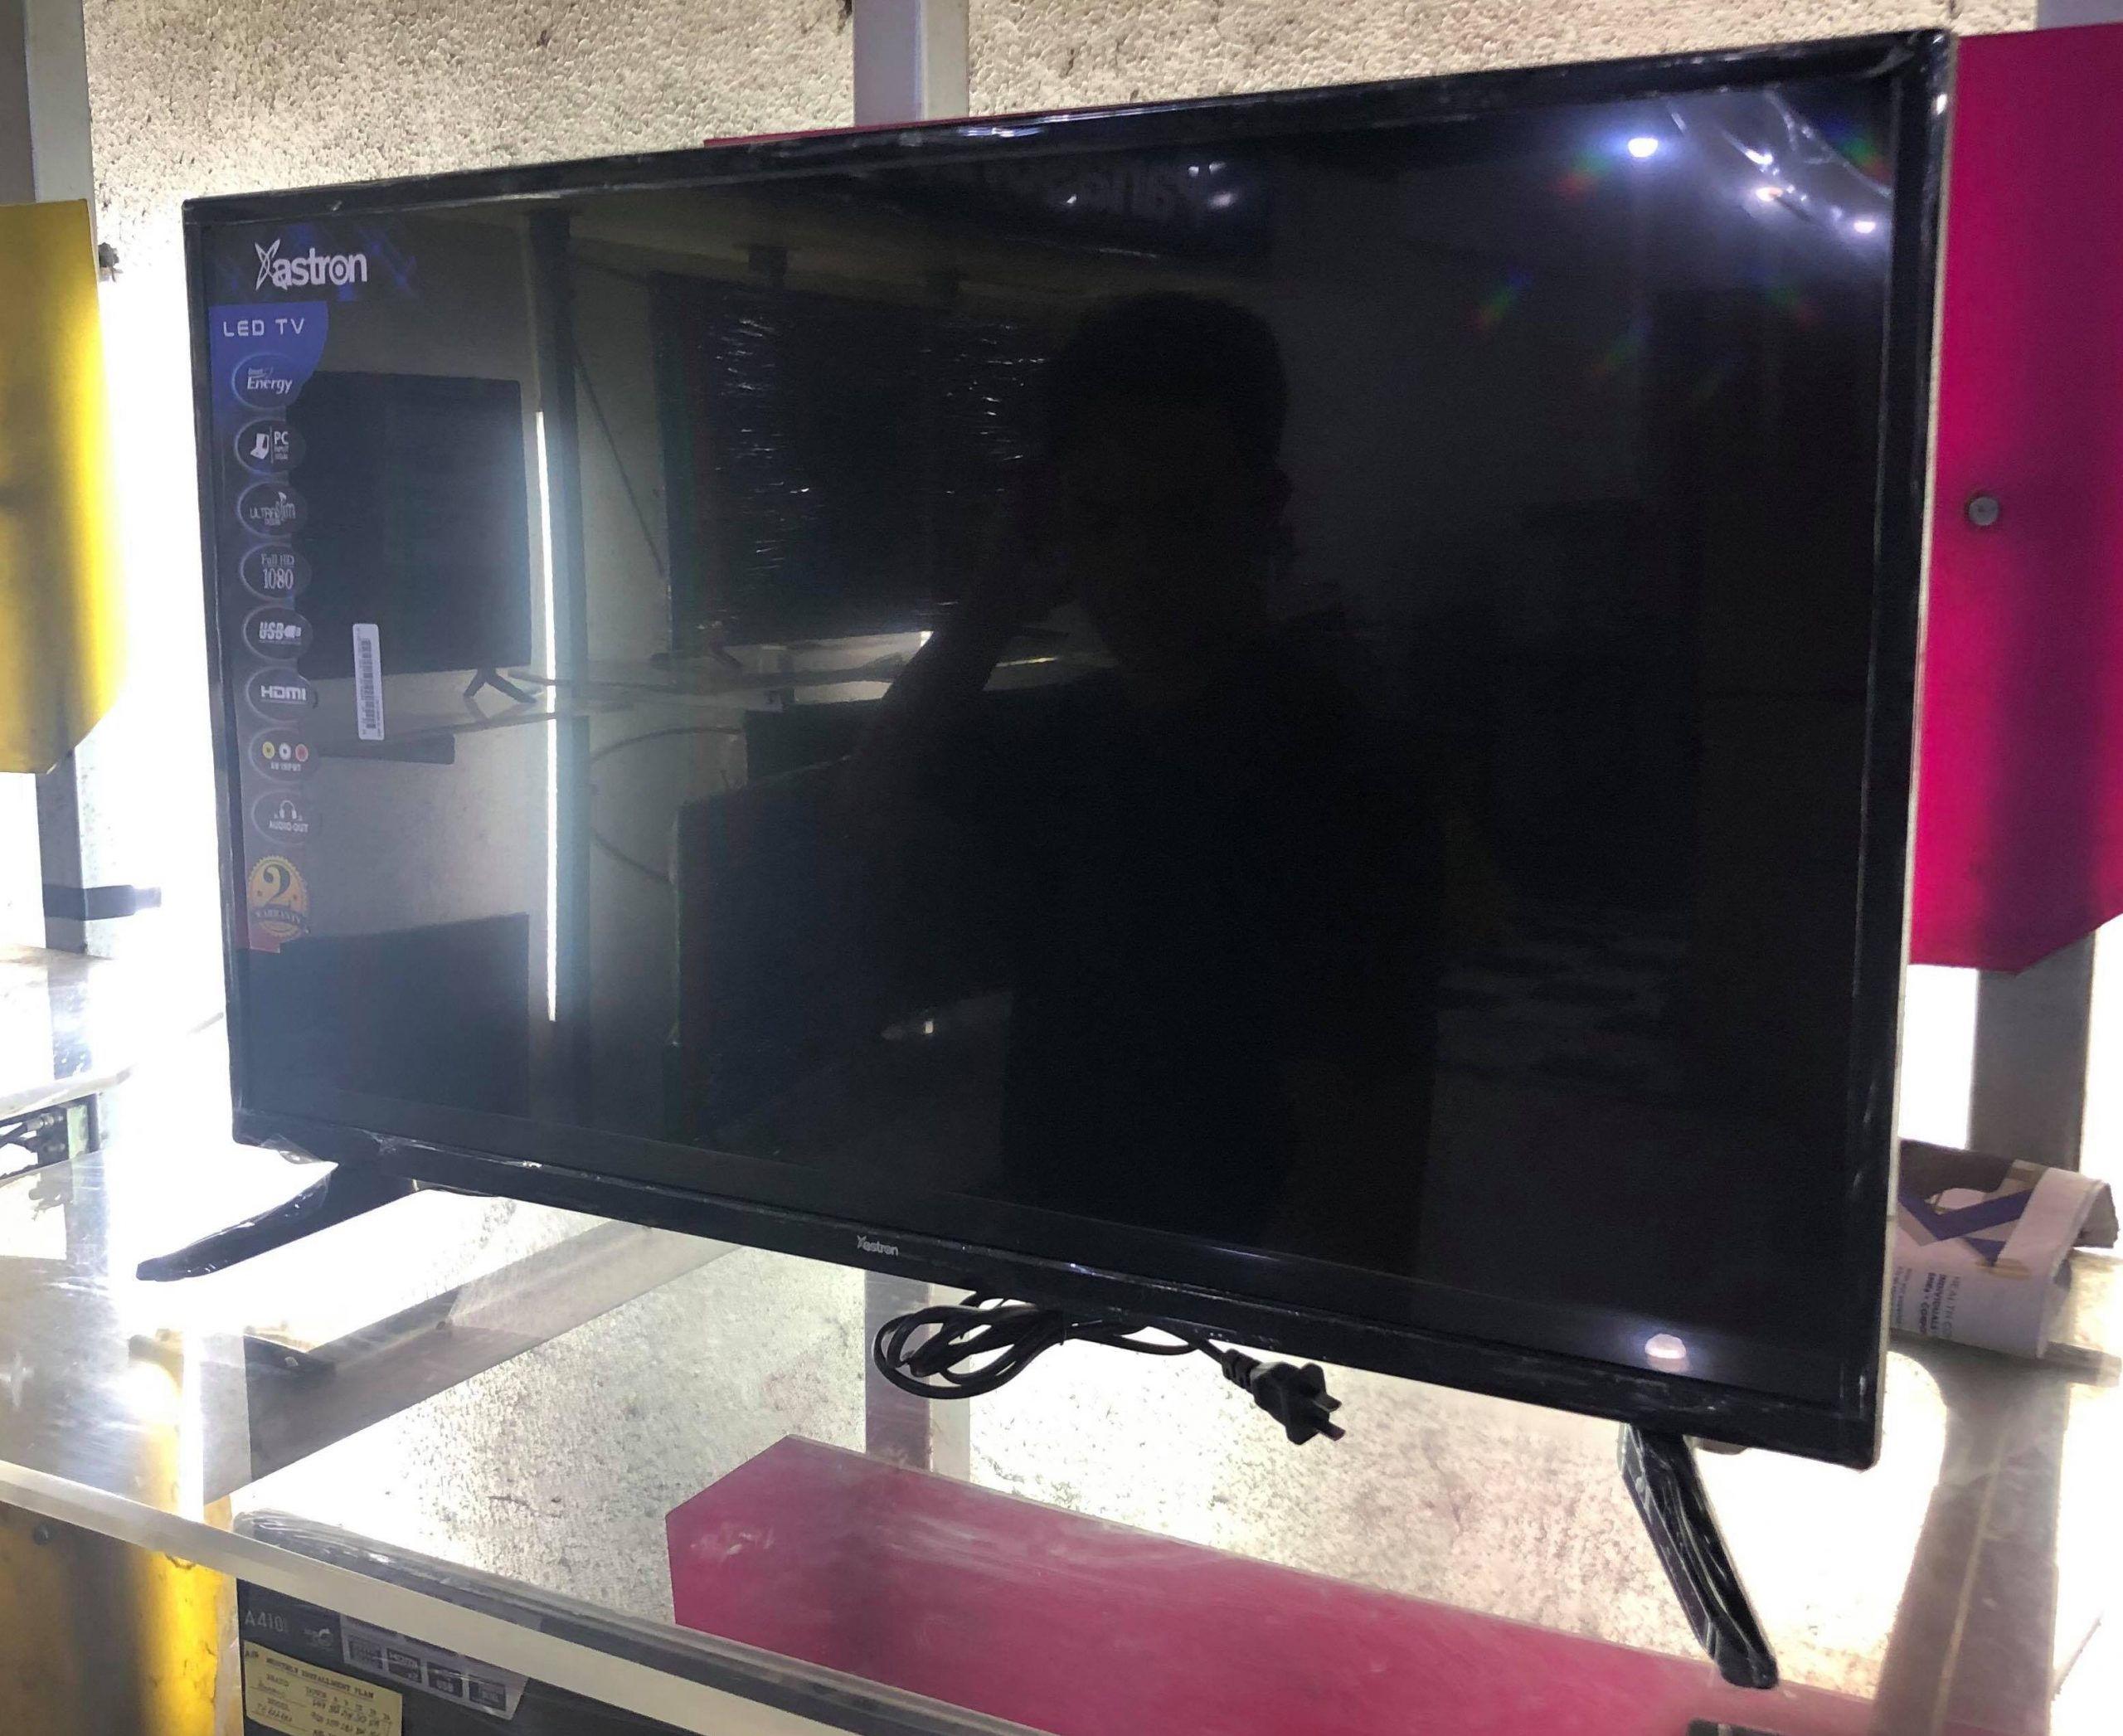 Astron 32 Inch Led Tv Cebu Appliance Center